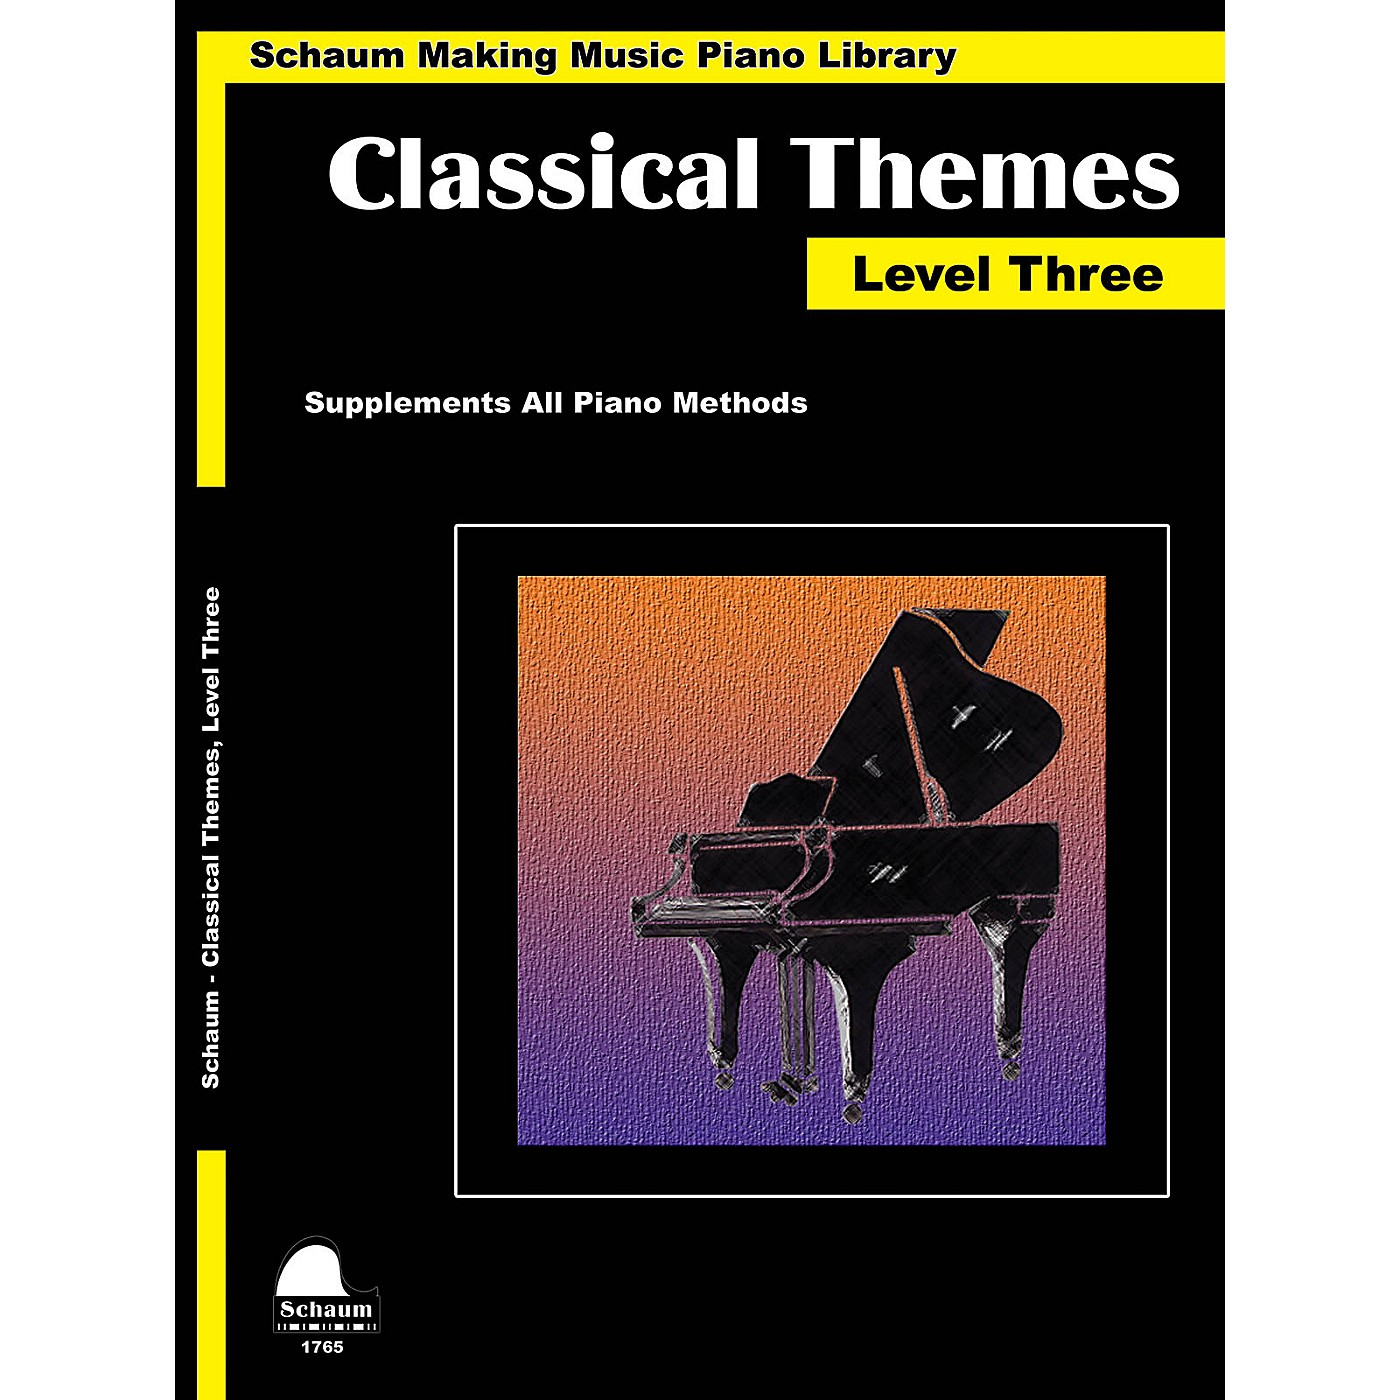 SCHAUM Classical Themes Level 3 (Schaum Making Music Piano Library) Educational Piano Book (Level Early Inter) thumbnail